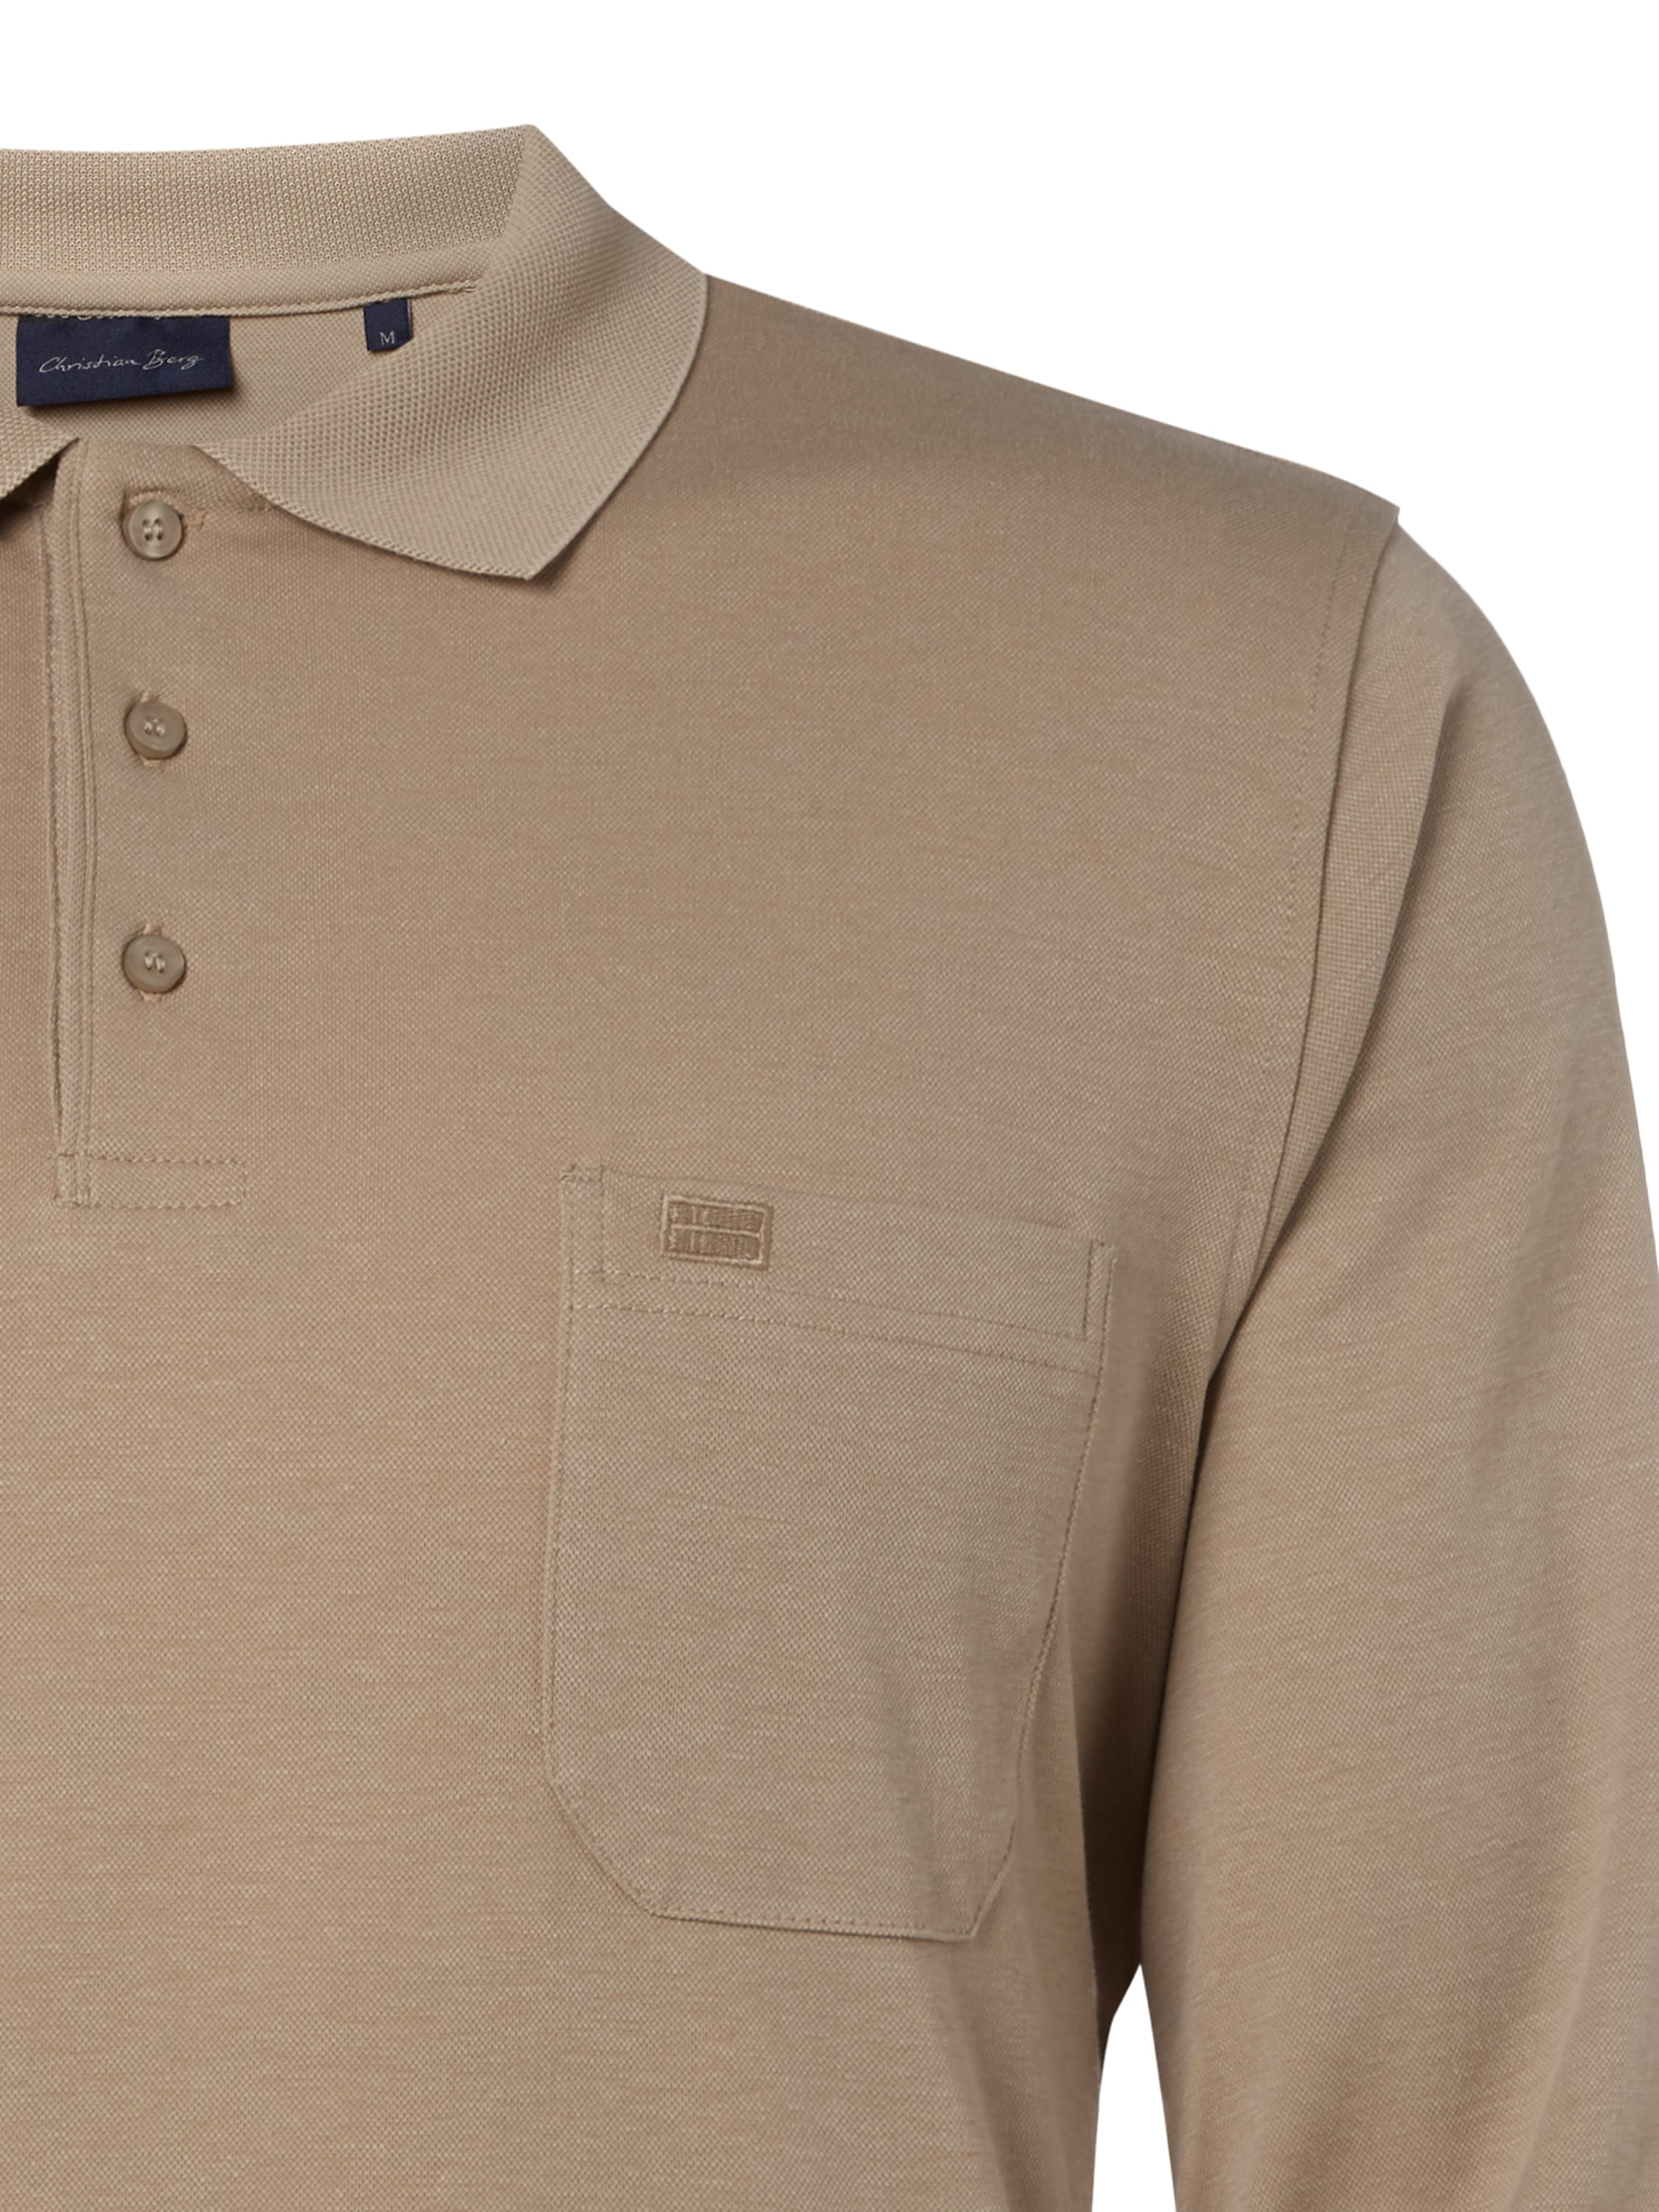 polo christian single men Offers christian dior clothing from the current collection men's and women's shirts, jeans, pants, t-shirts and jackets are available.